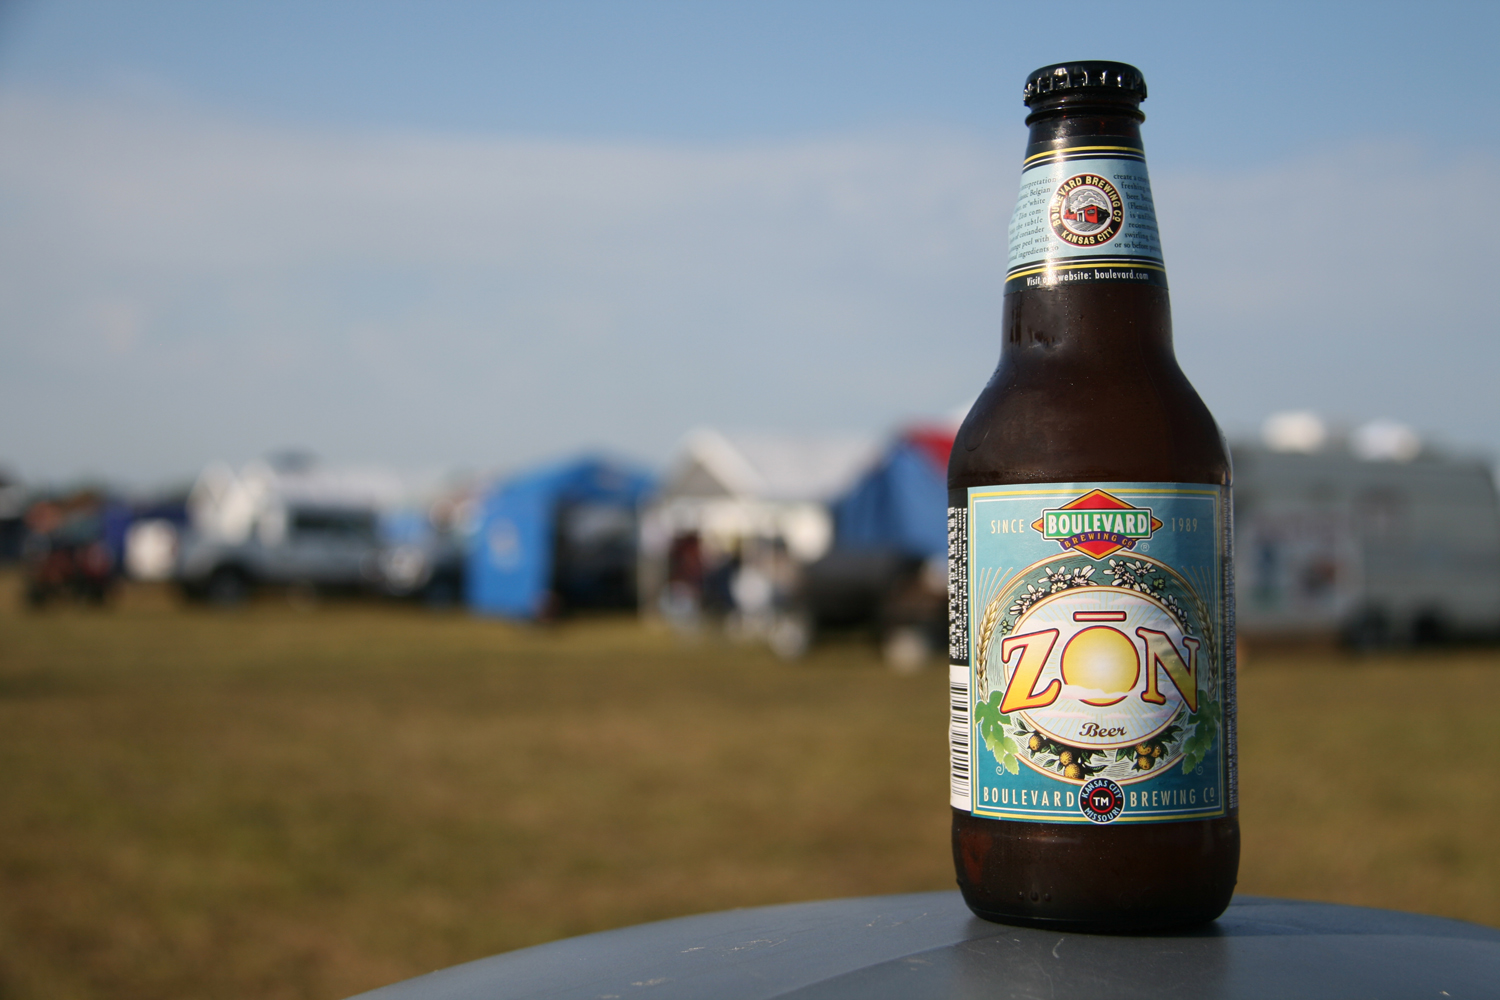 Drink Boulevard Zon witbier summertime seasonal beer for your next bbq.